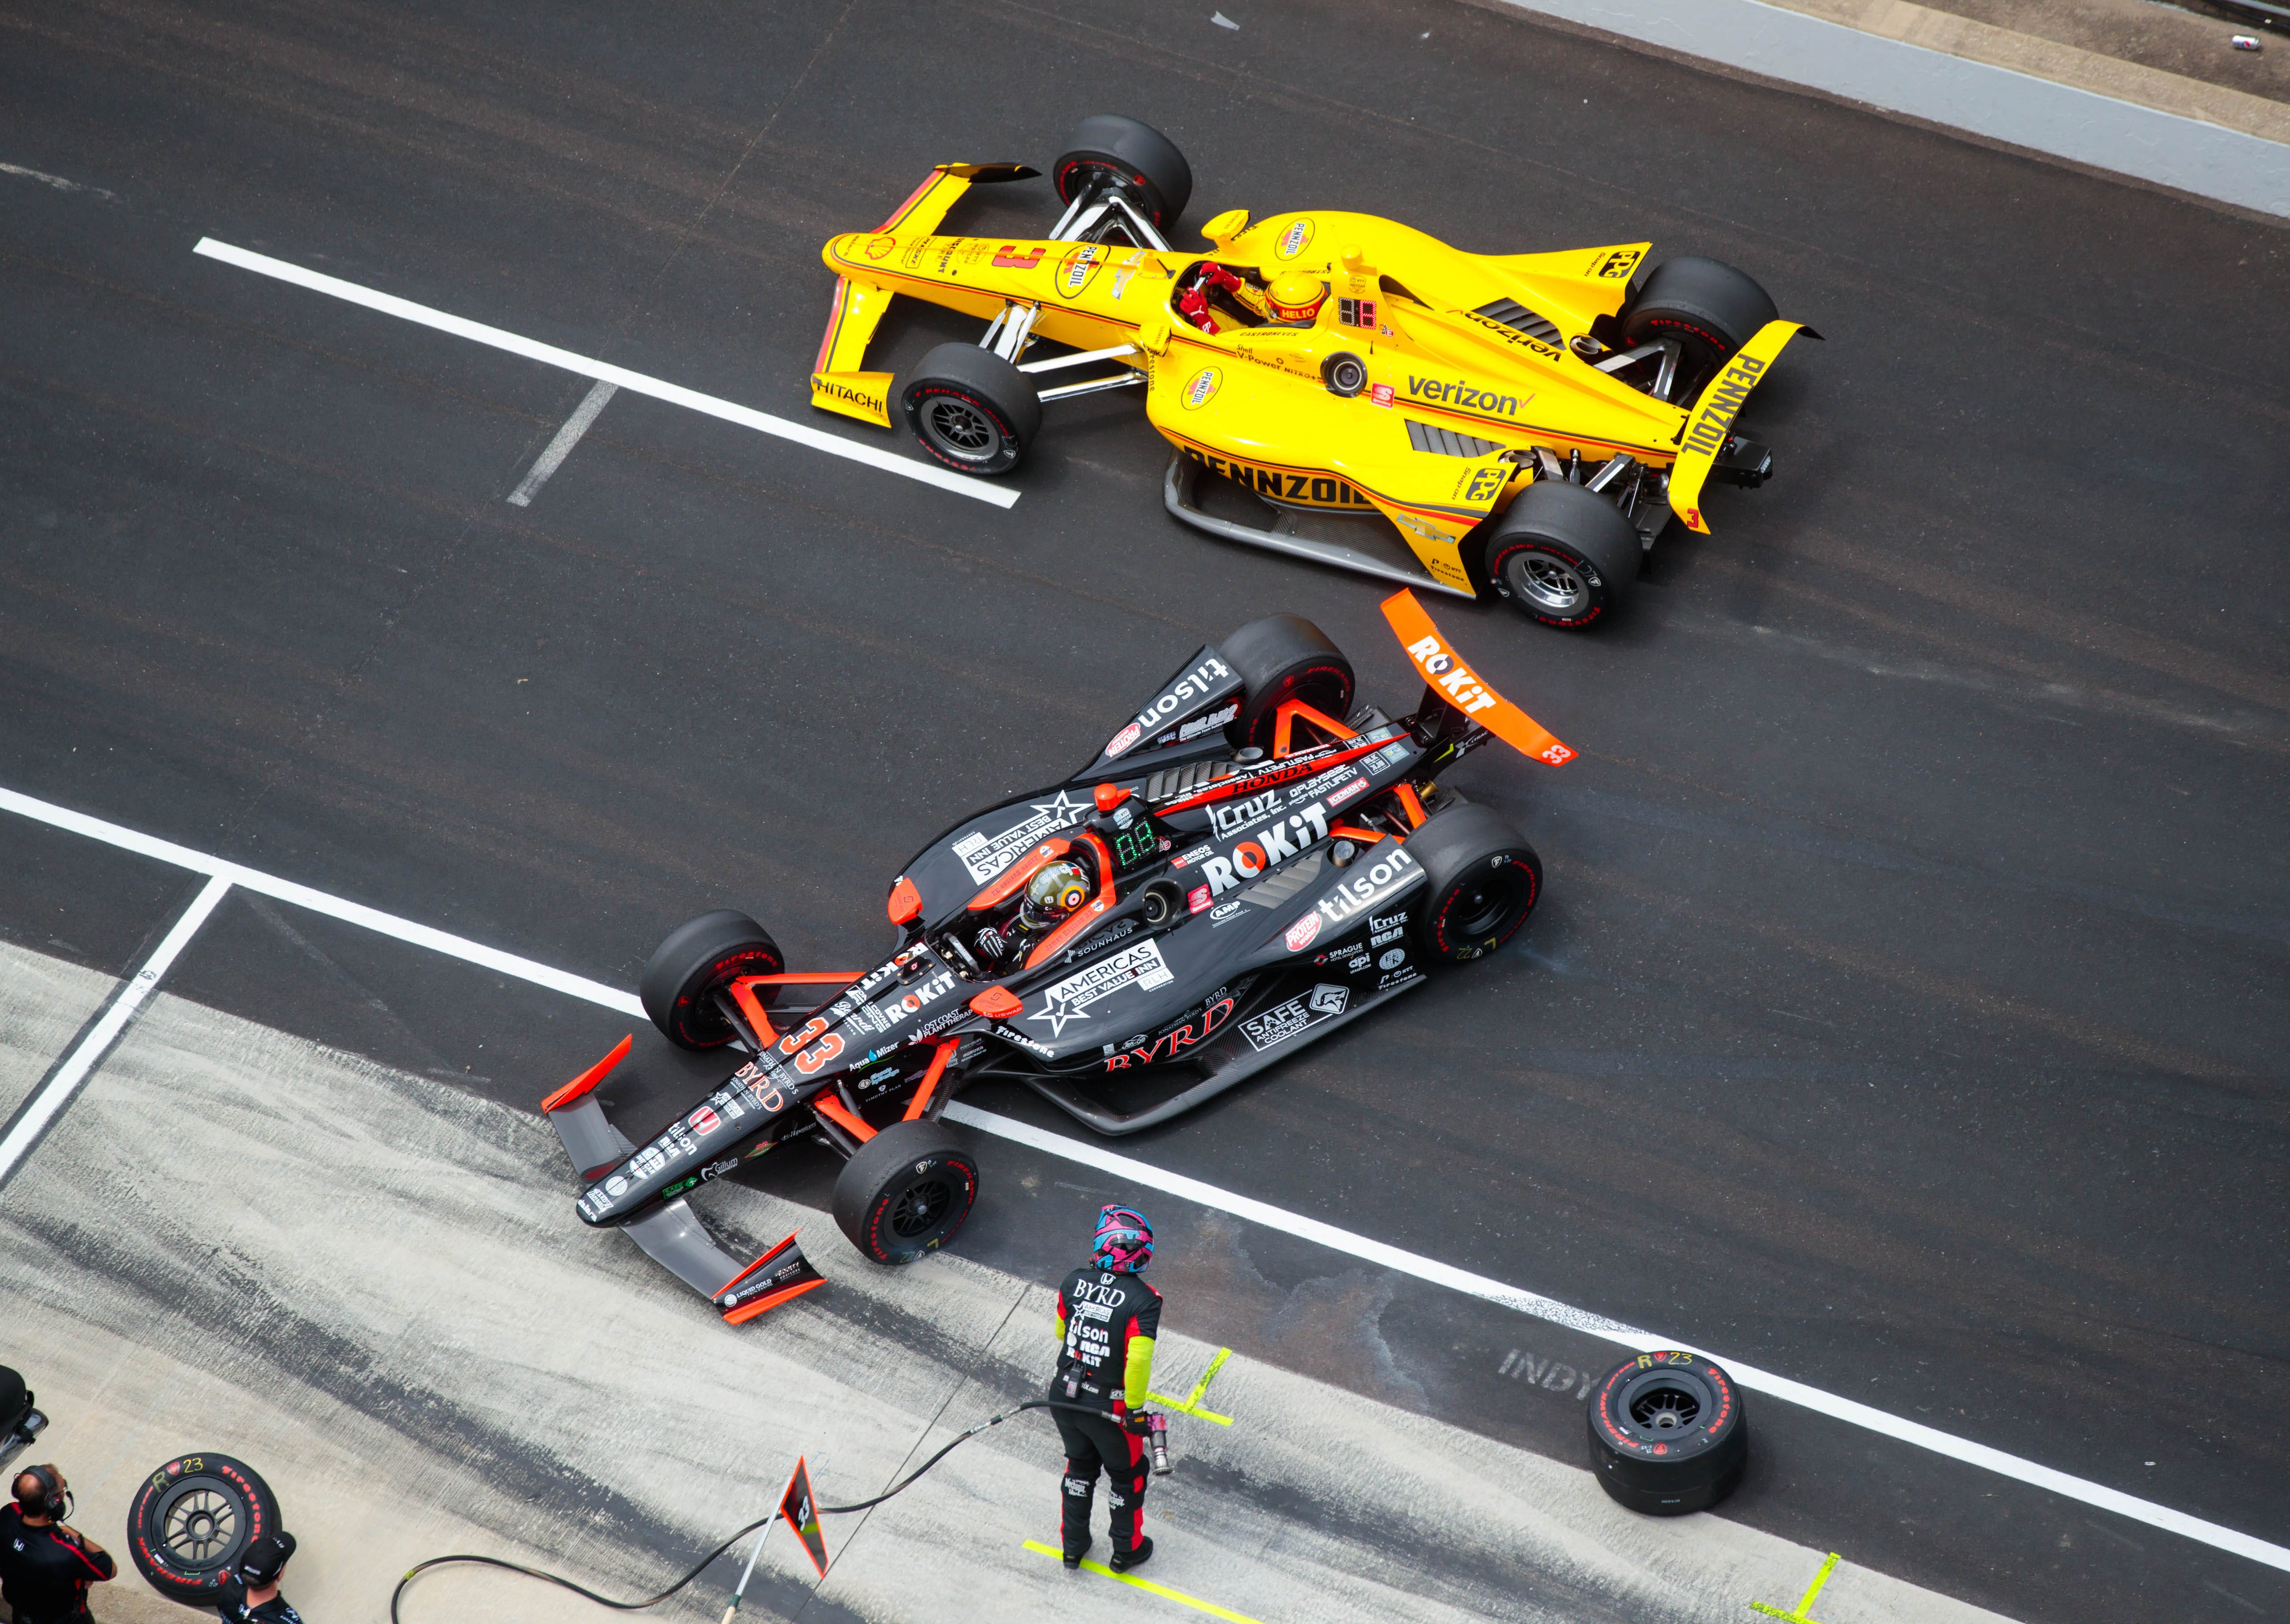 Best photos from the 2019 Indianapolis 500